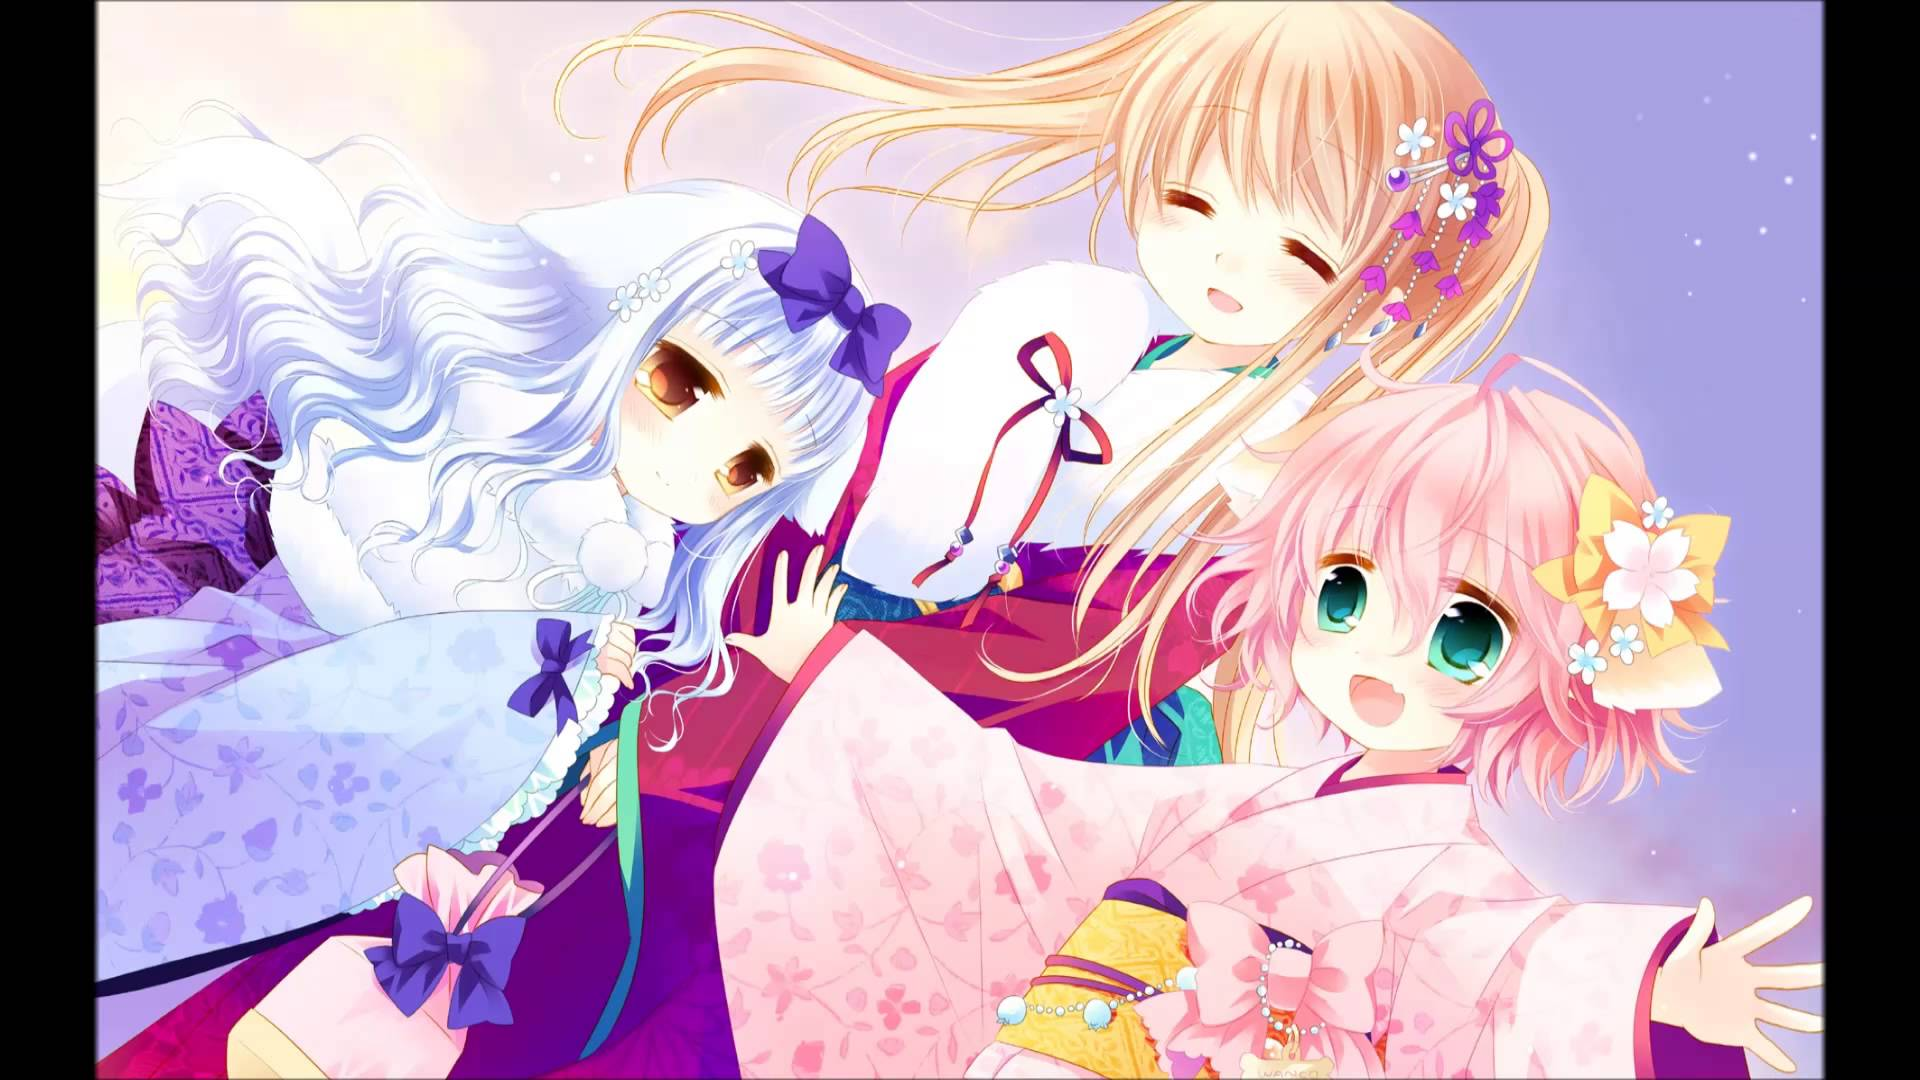 Wanko To Lily Backgrounds, Compatible - PC, Mobile, Gadgets| 1920x1080 px